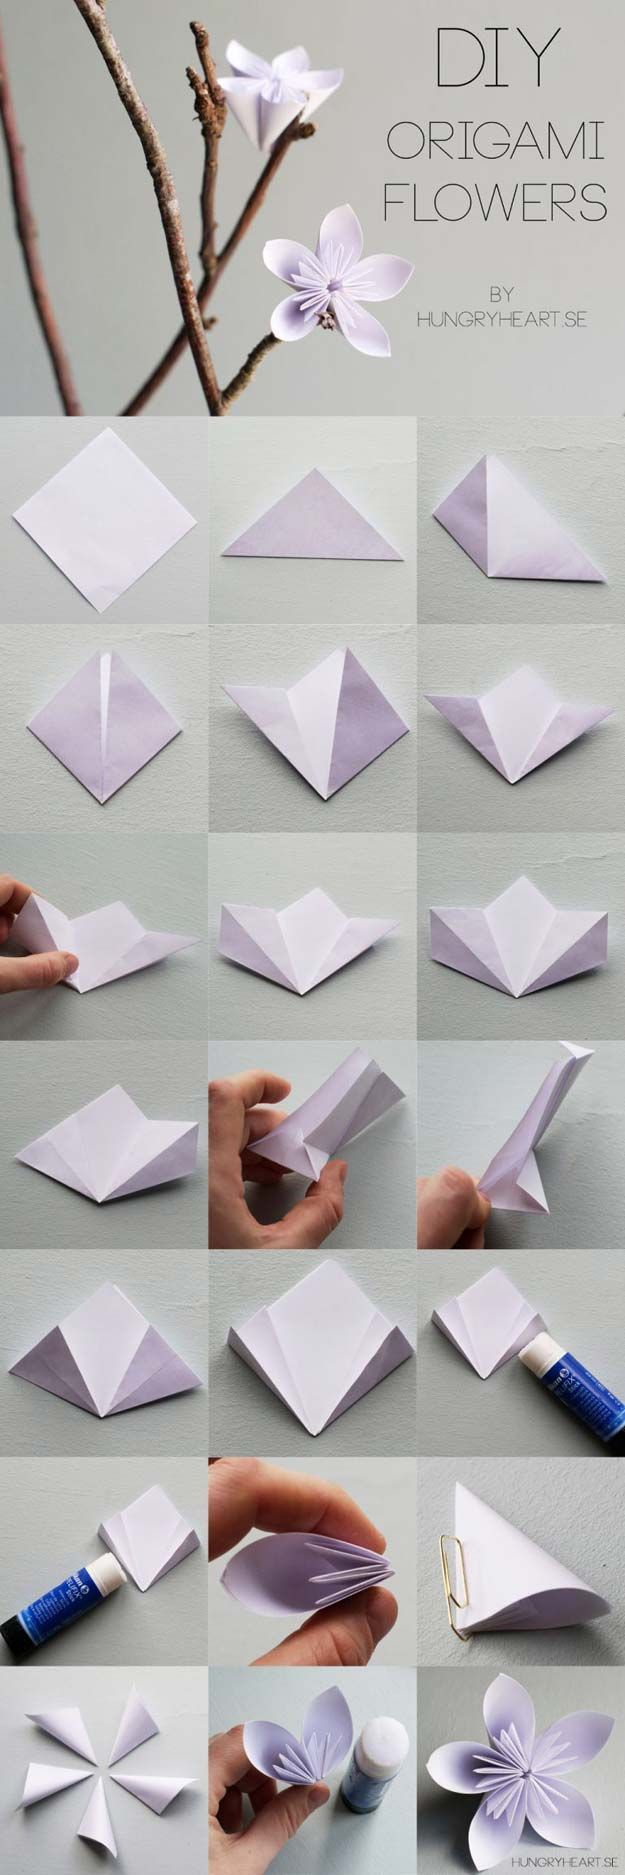 Best Origami Tutorials - Flower Origami - Easy DIY Origami Tutorial Projects for With Instructions for Flowers, Dog, Gift Box, Star, Owl, Buttlerfly, Heart and Bookmark, Animals - Fun Paper Crafts for